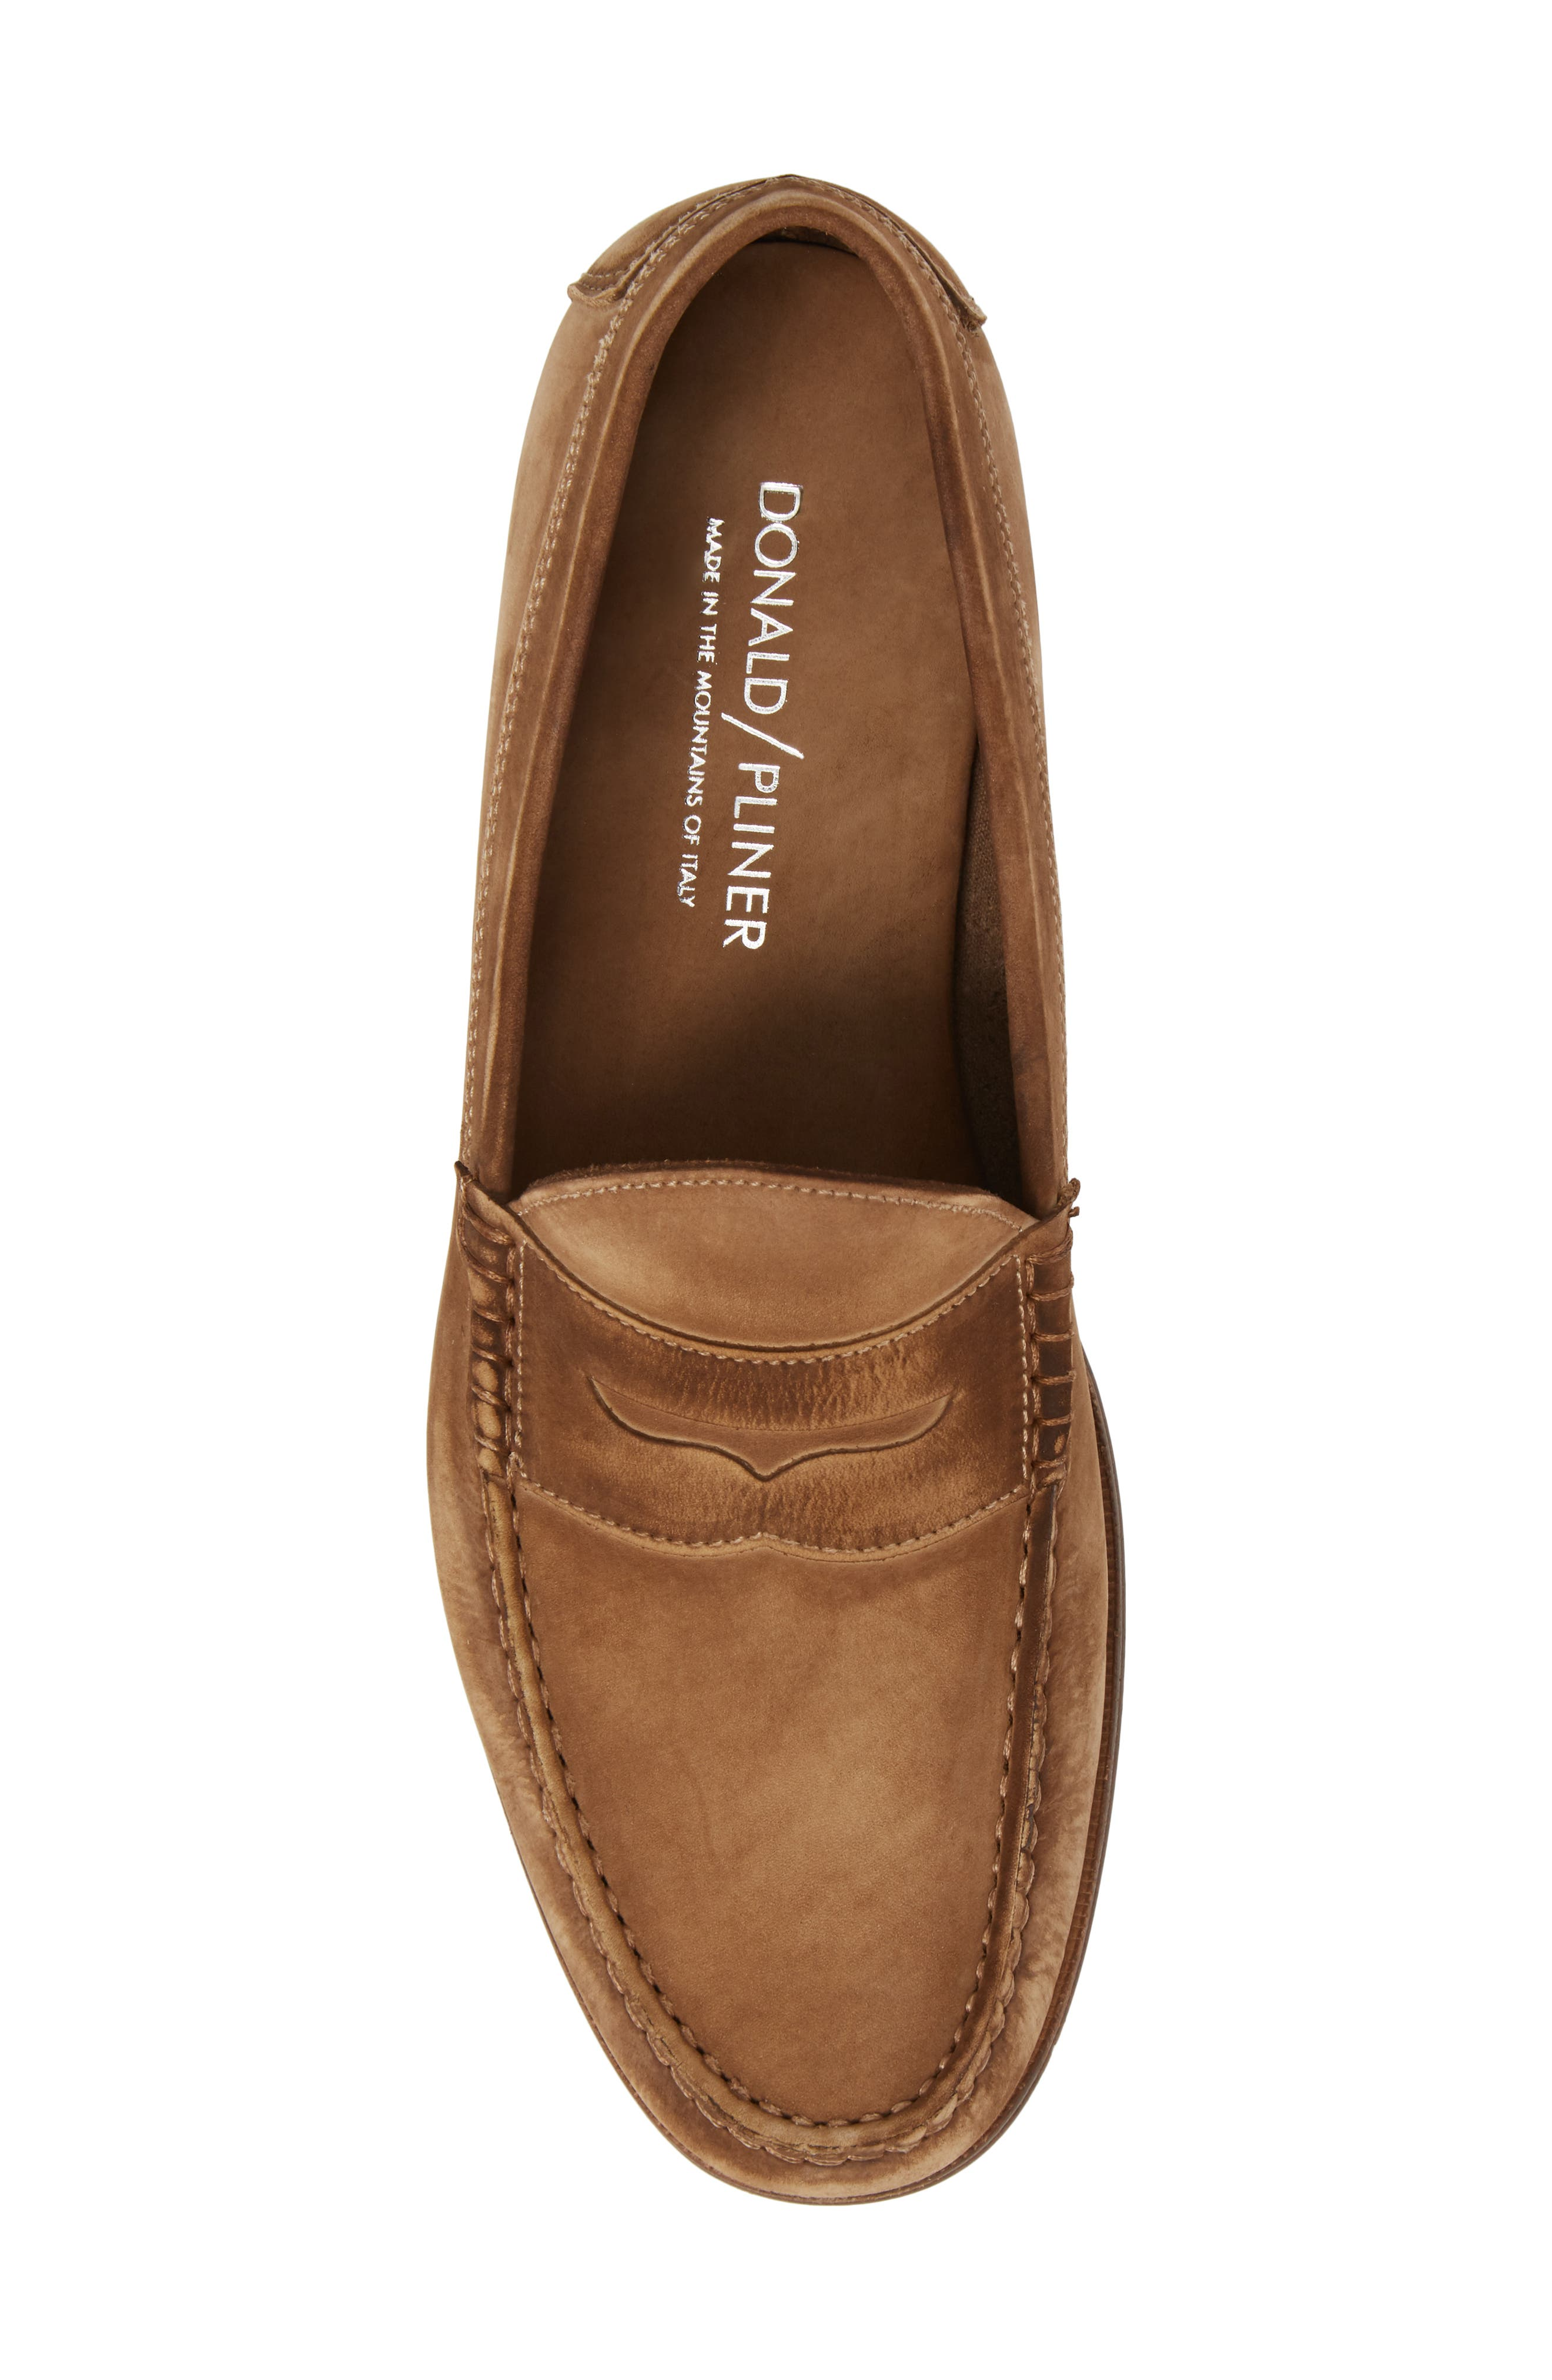 Nicola Penny Loafer,                             Alternate thumbnail 5, color,                             205